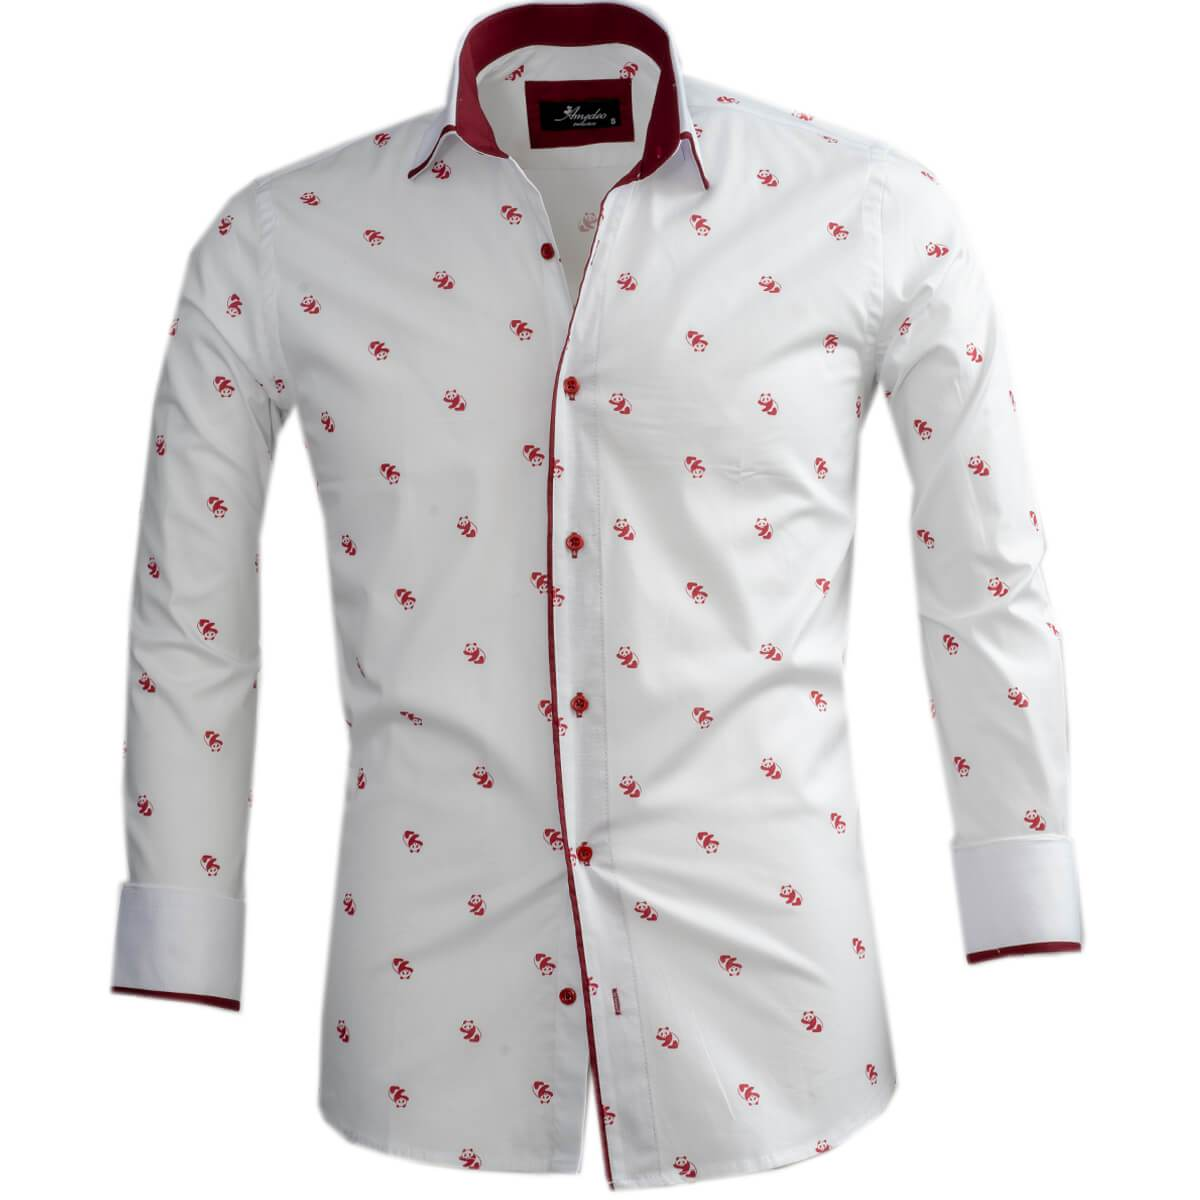 White Burgundy Panda's Mens Slim Fit Designer Dress Shirt - tailored Cotton Shirts for Work and Casual Wear - Amedeo Exclusive